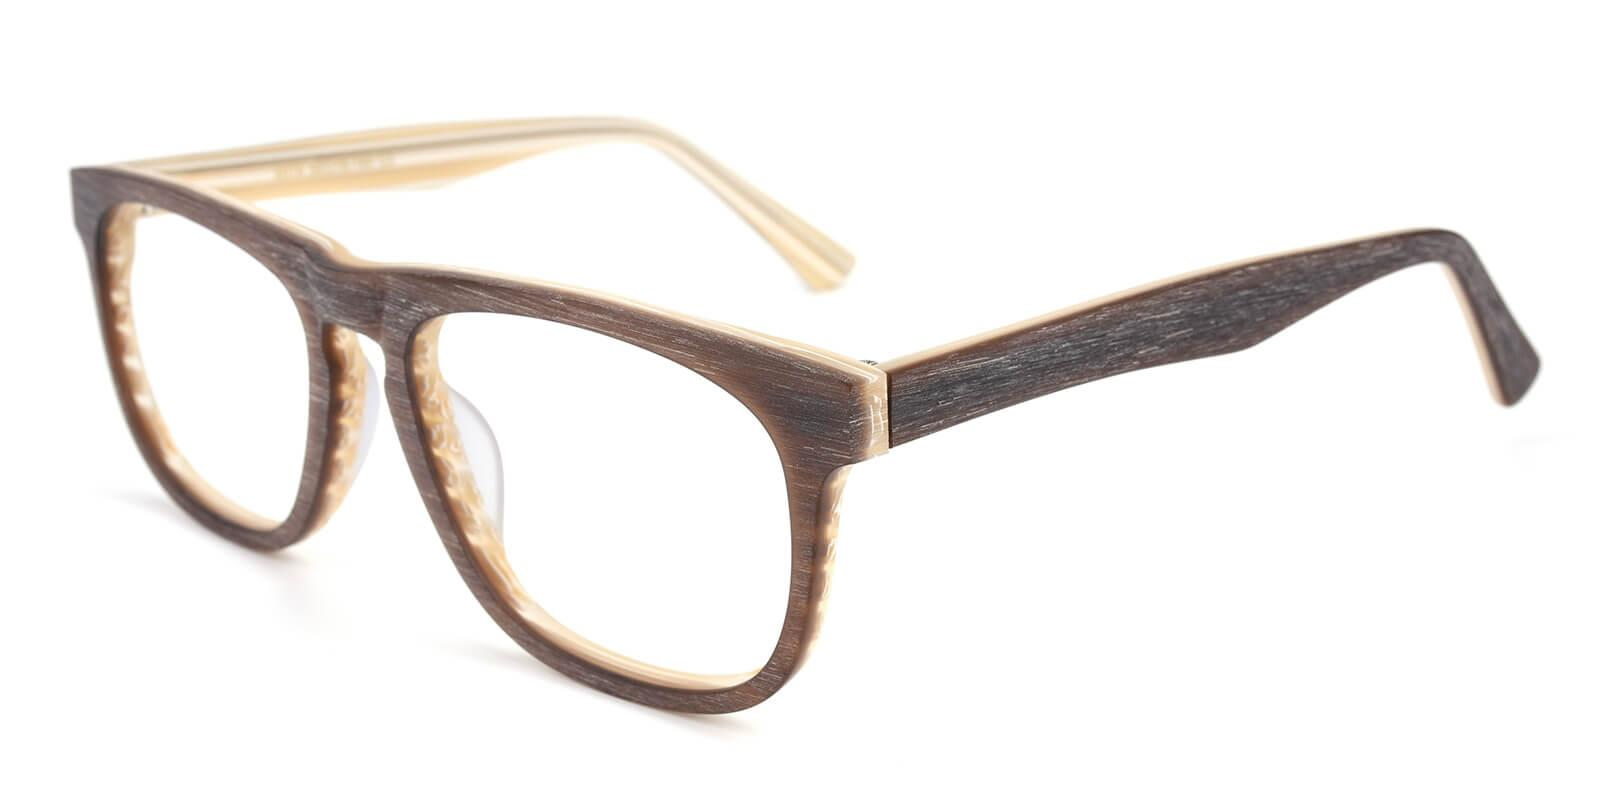 Emory-Striped-Square-Acetate-Eyeglasses-detail